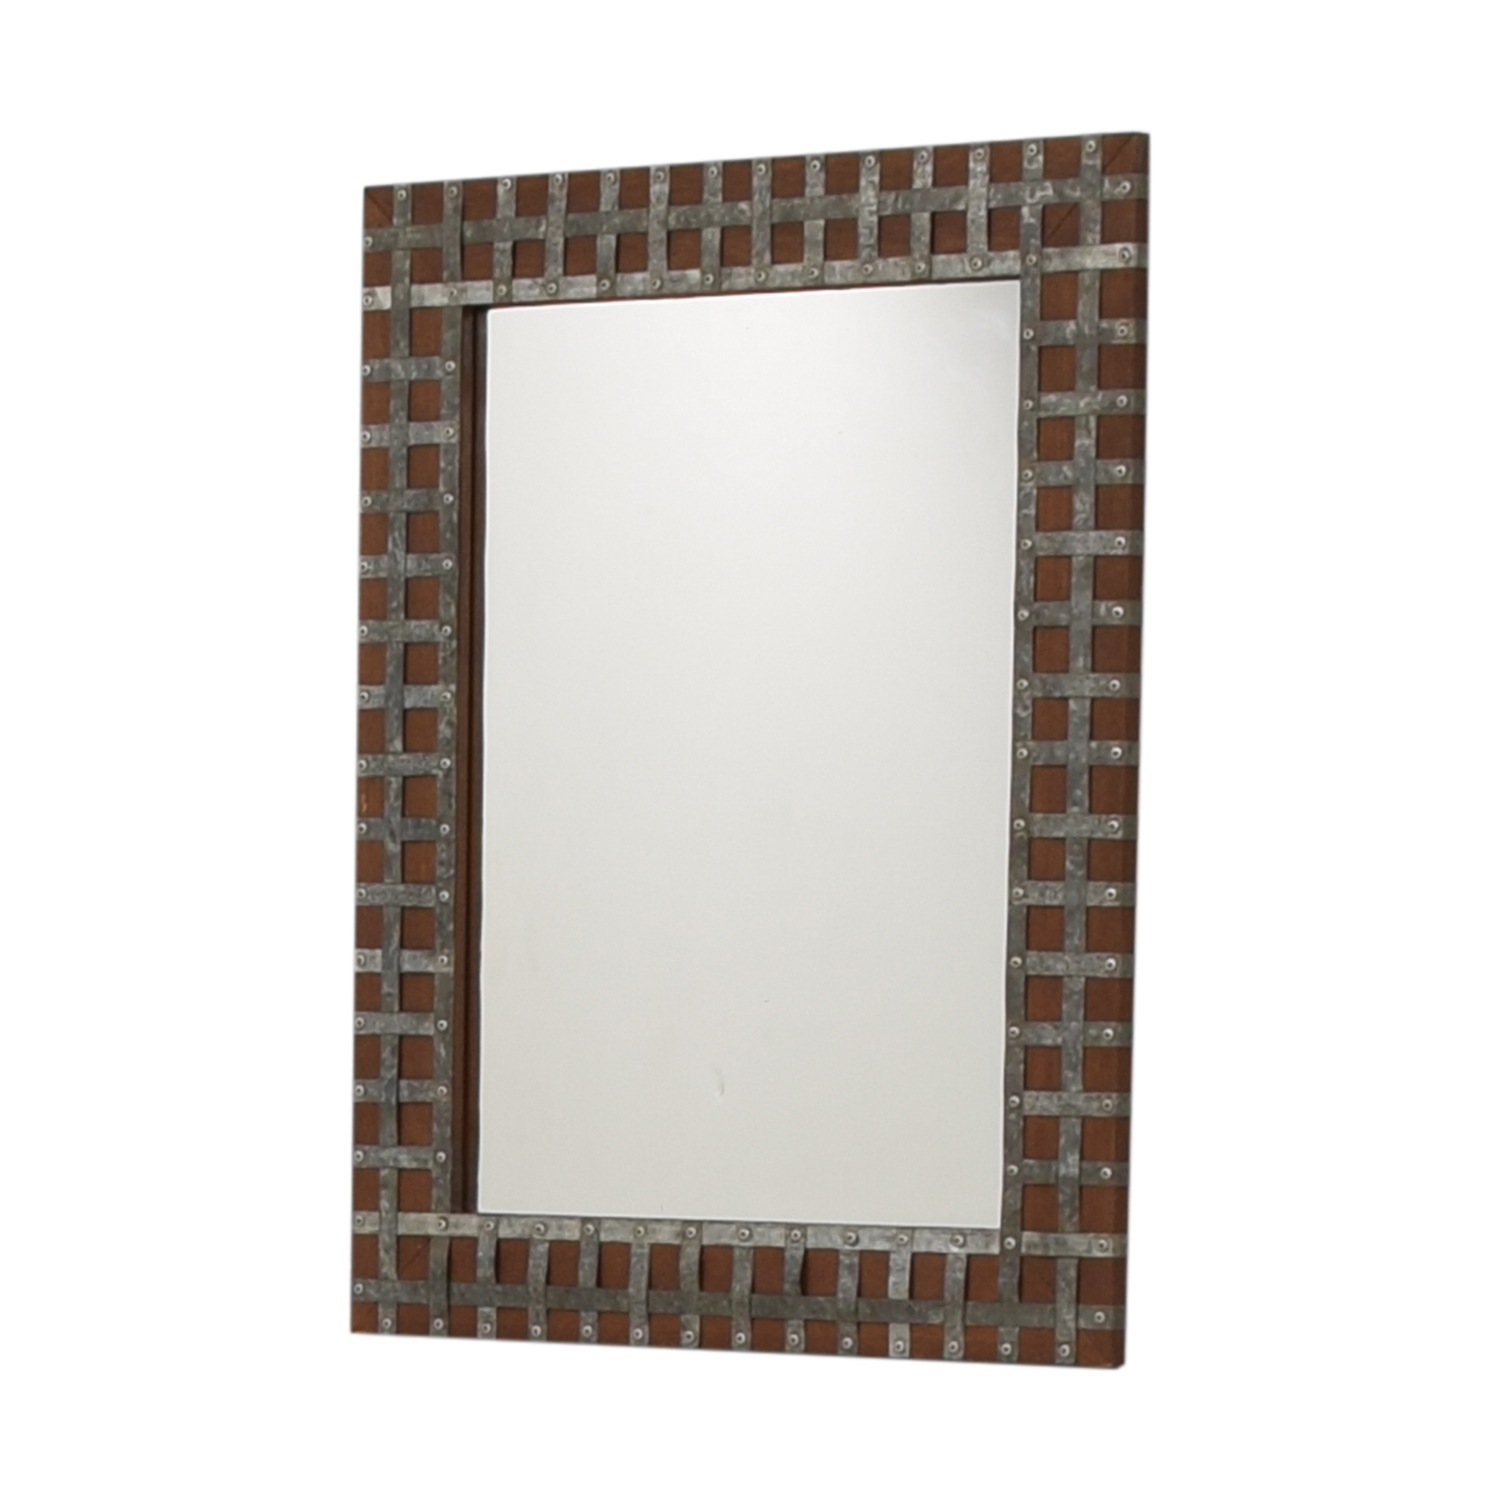 [%90% Off – Pier 1 Pier One Industrial Wood And Metal Framed Wall Mirror / Decor In Well Known Pier One Wall Mirrors|Pier One Wall Mirrors Throughout Most Popular 90% Off – Pier 1 Pier One Industrial Wood And Metal Framed Wall Mirror / Decor|Preferred Pier One Wall Mirrors For 90% Off – Pier 1 Pier One Industrial Wood And Metal Framed Wall Mirror / Decor|Famous 90% Off – Pier 1 Pier One Industrial Wood And Metal Framed Wall Mirror / Decor Pertaining To Pier One Wall Mirrors%] (View 5 of 20)